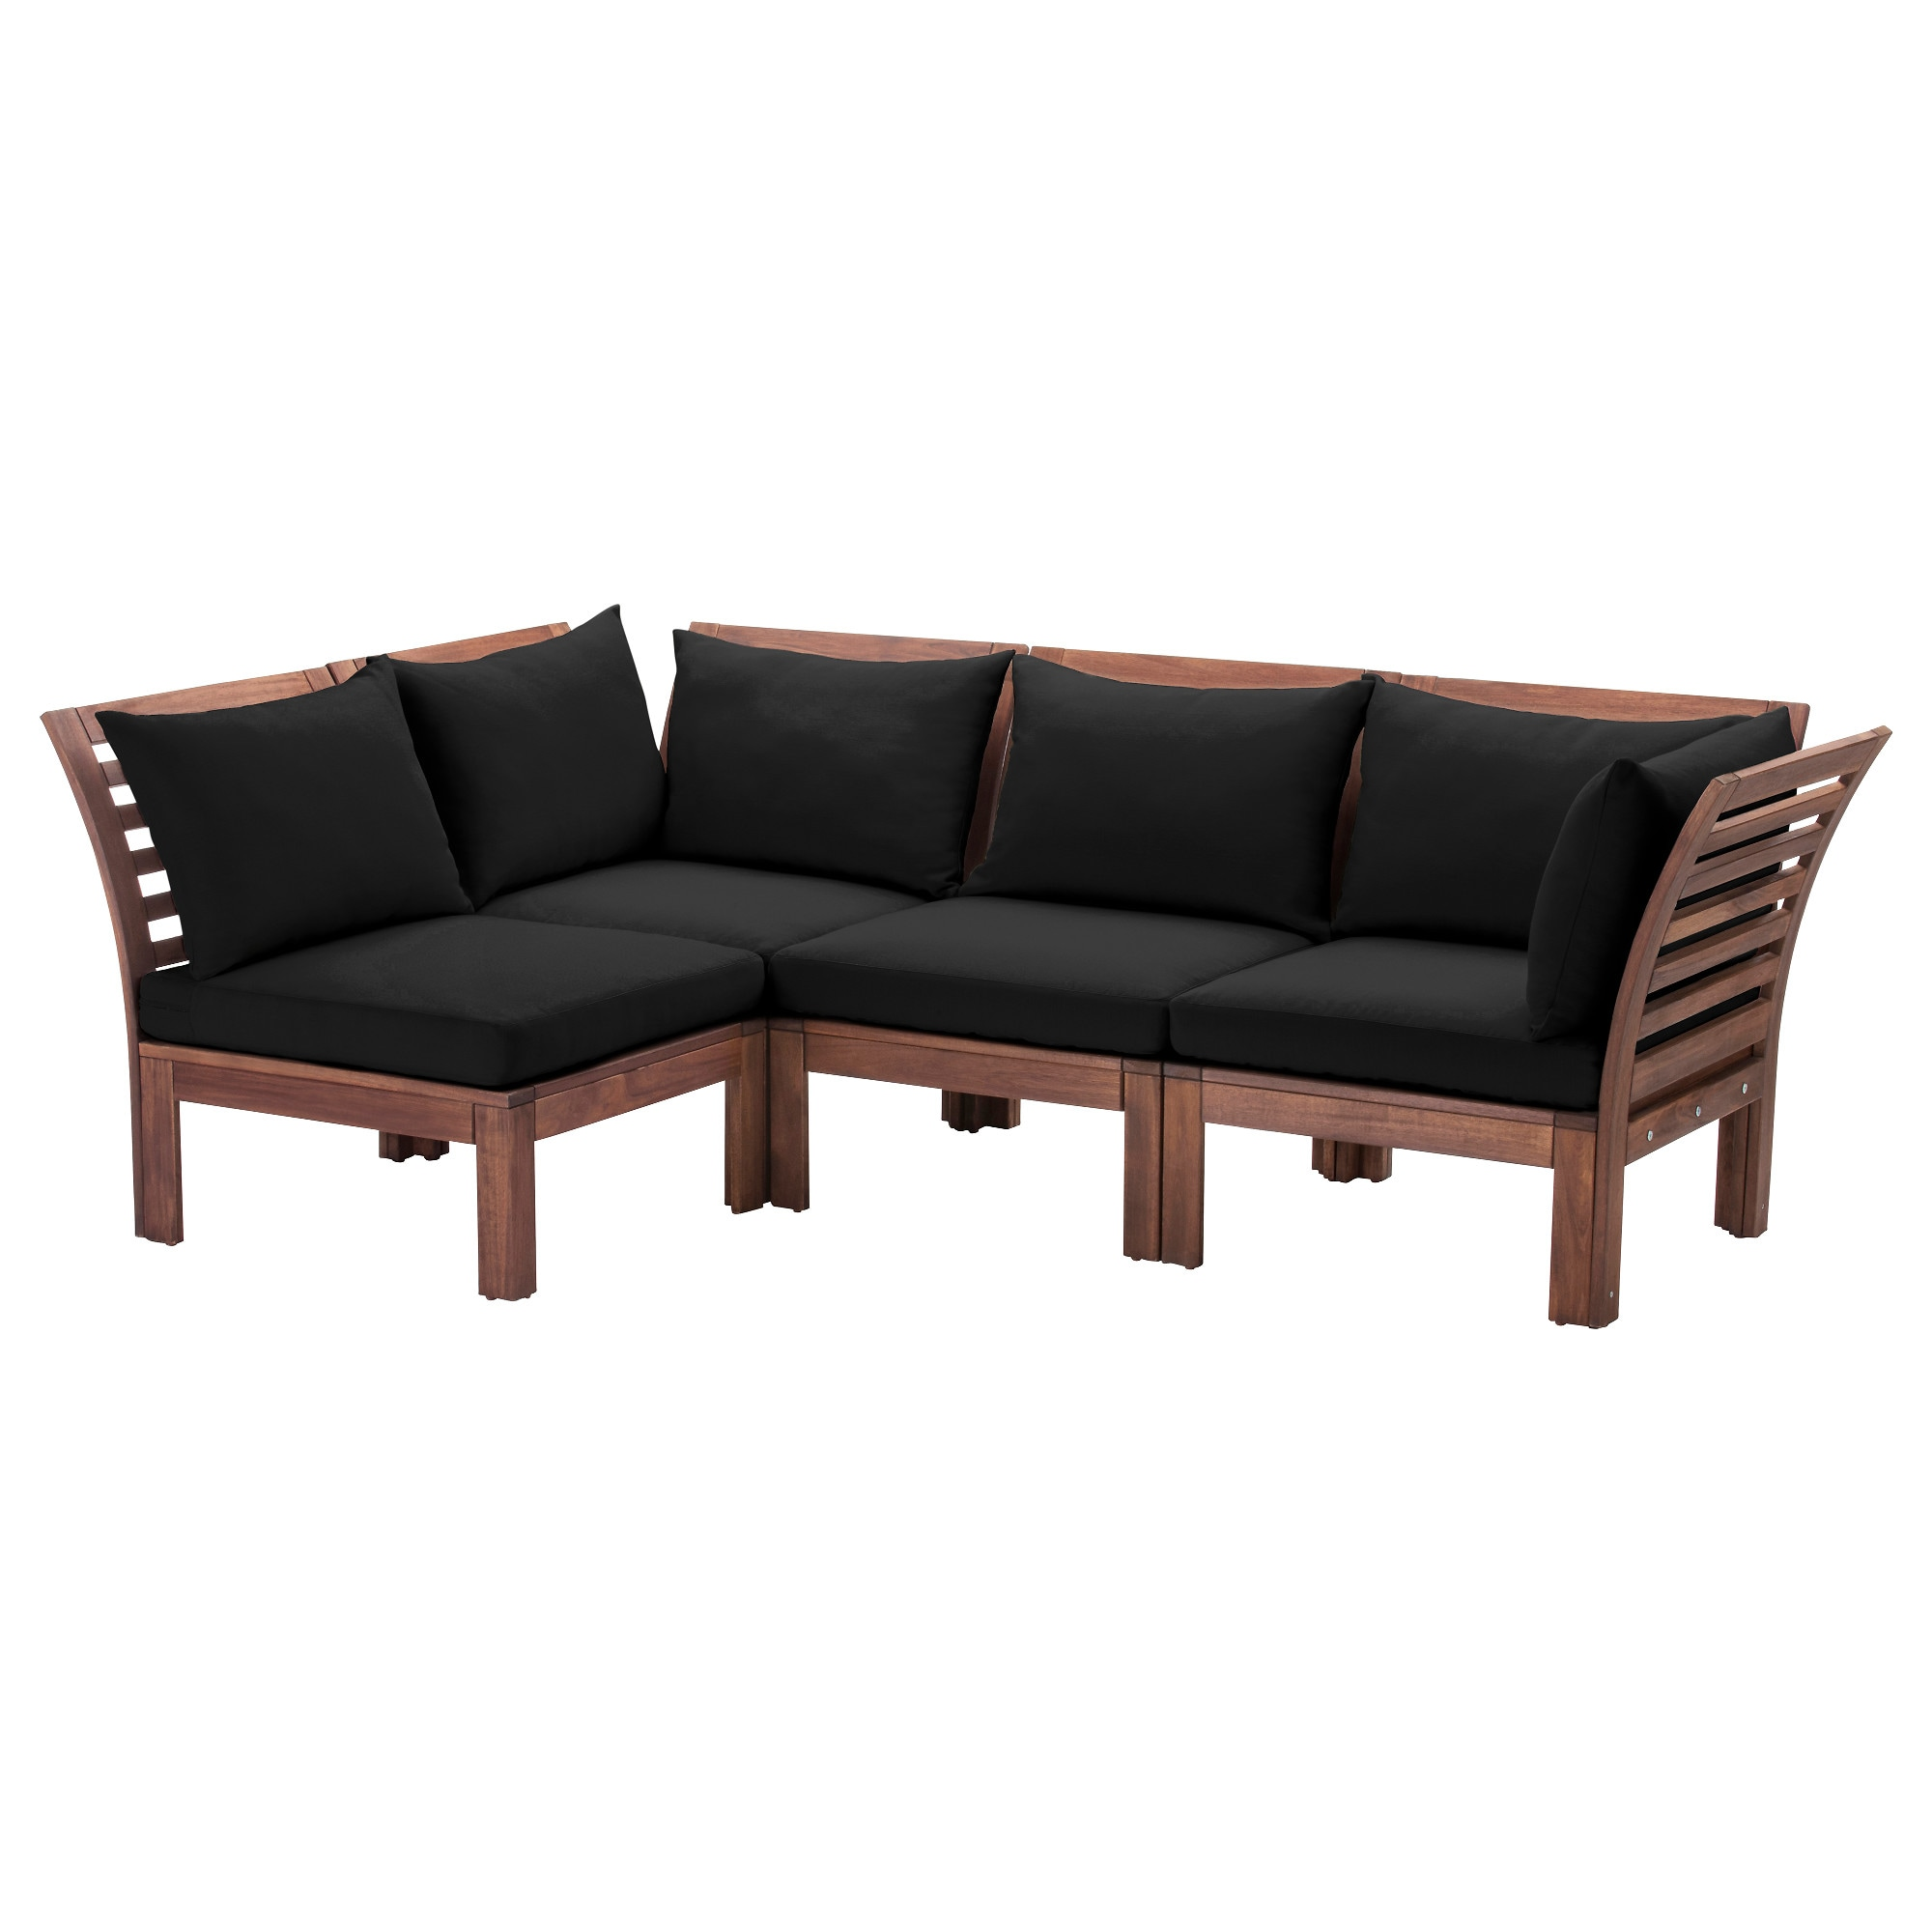 sofa sets ikea wonderful living room furniture sets ikea thesofa. Black Bedroom Furniture Sets. Home Design Ideas